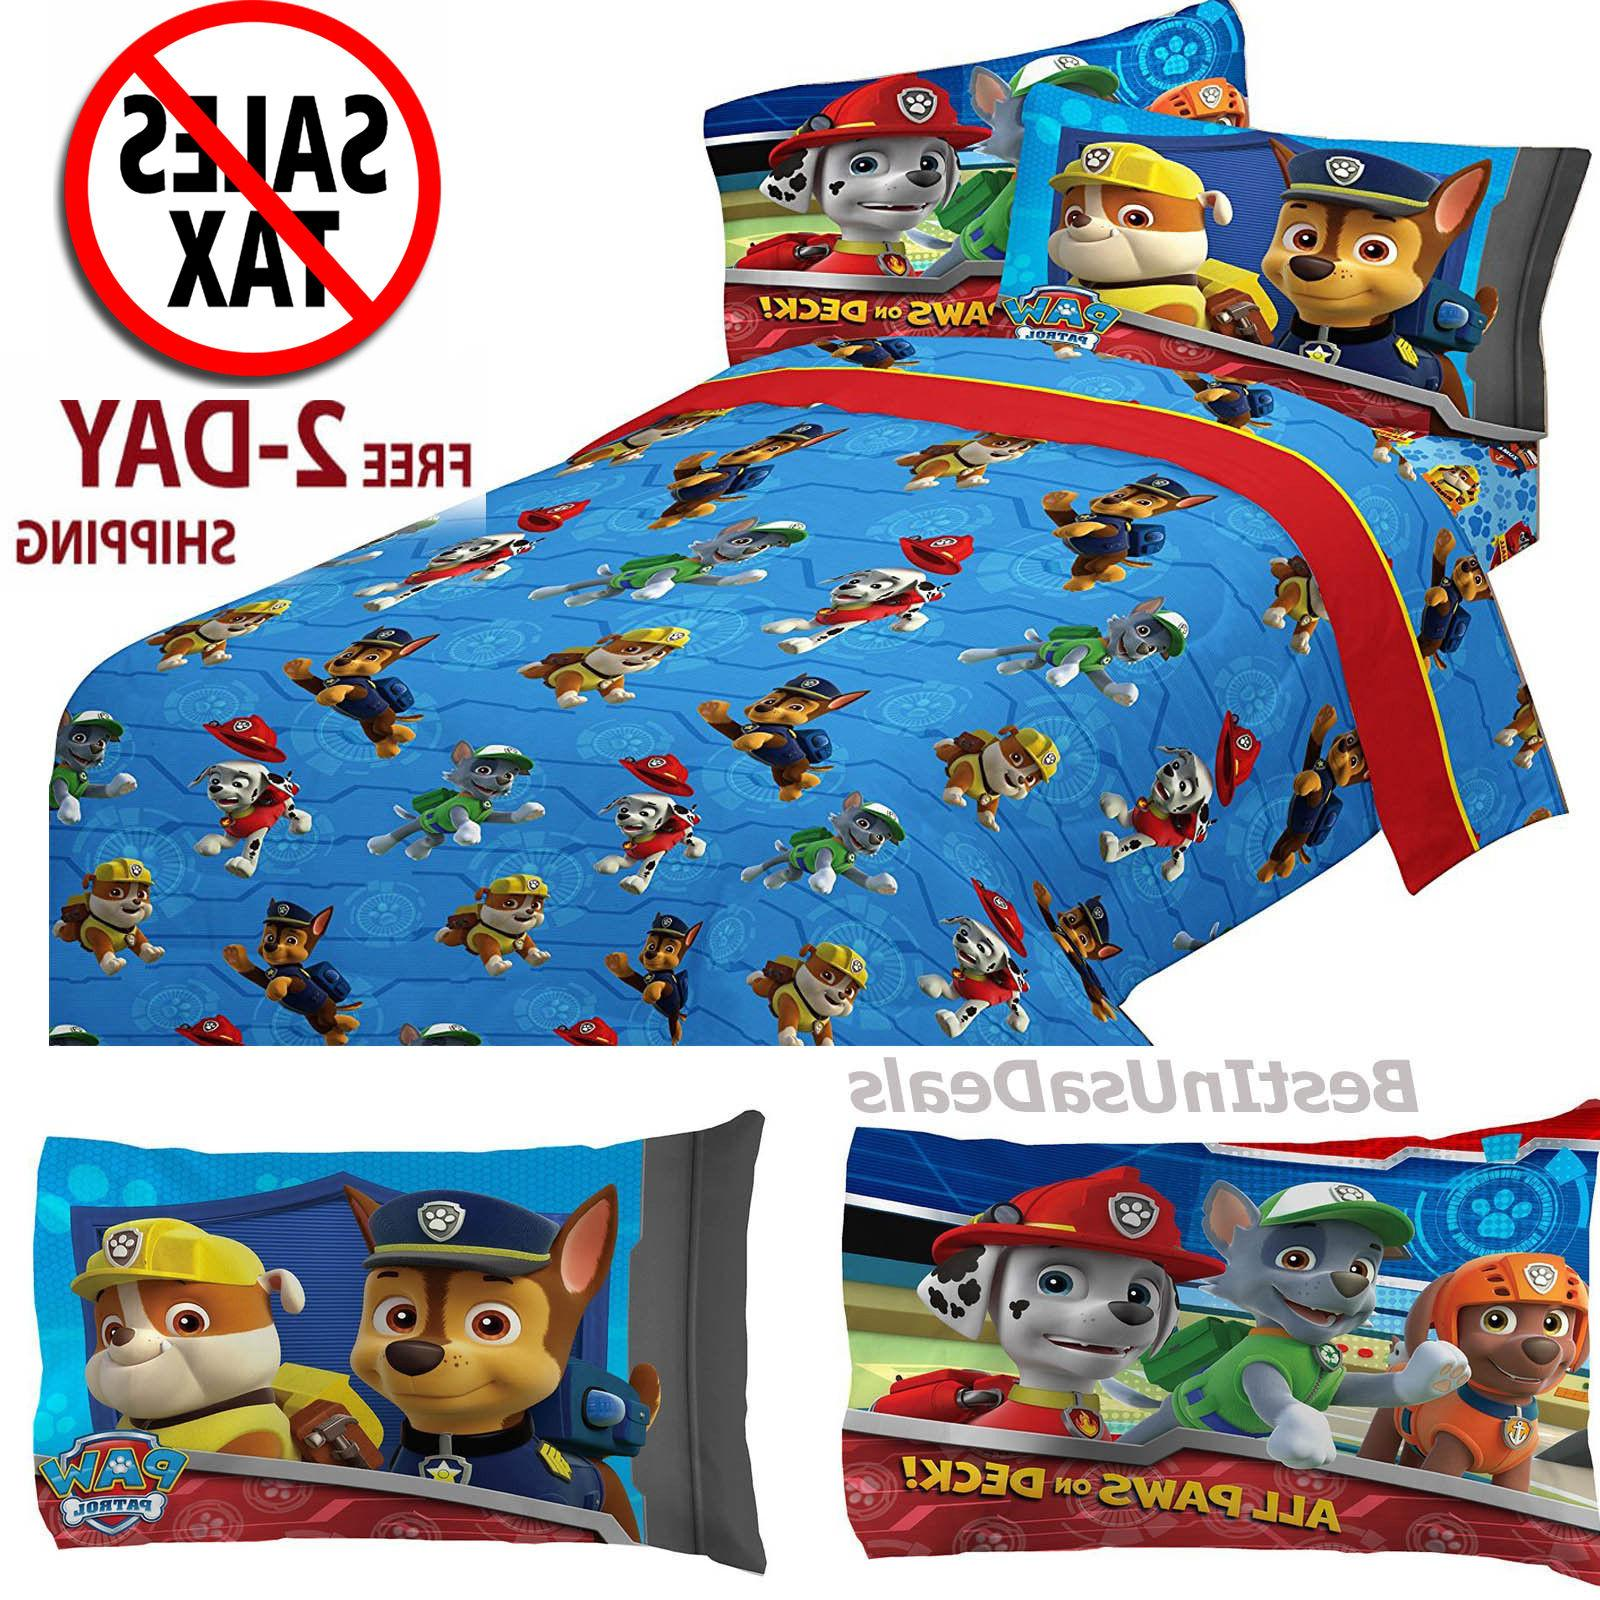 Toddler Twin Size Bed Sheets Boys Paw Patrol Rescue with Pil